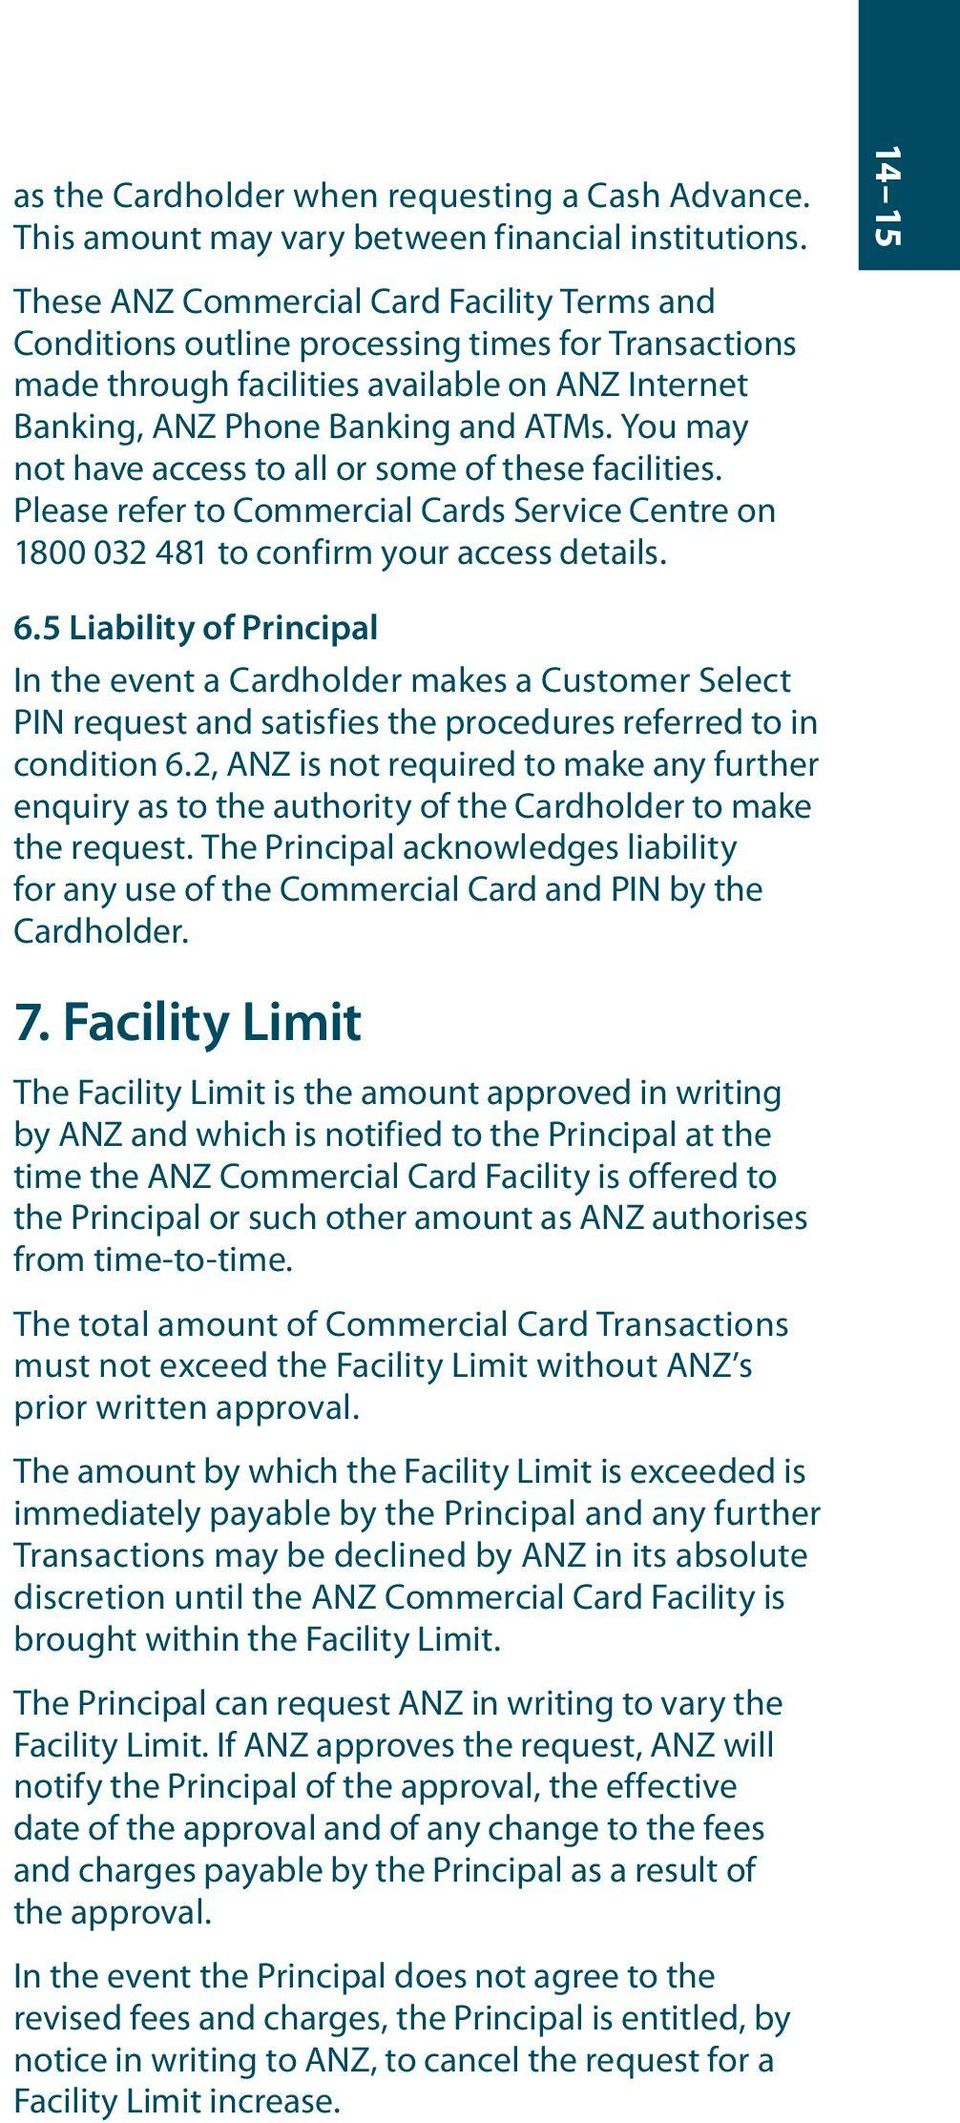 You may not have access to all or some of these facilities. Please refer to Commercial Cards Service Centre on 1800 032 481 to confirm your access details. 6.